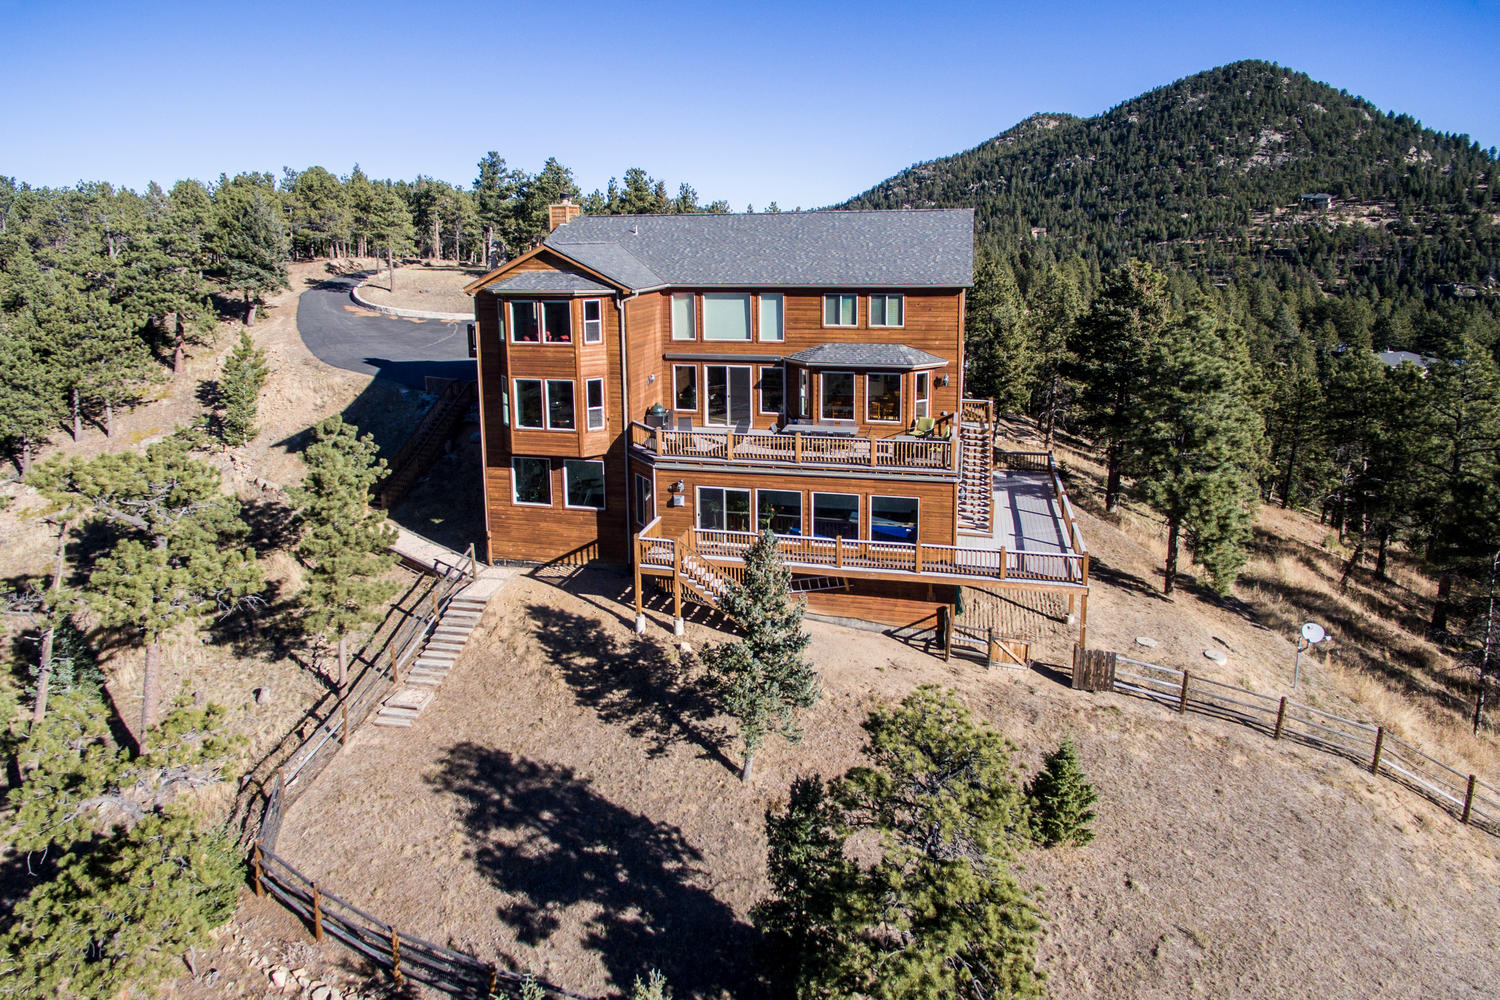 Single Family Home for Sale at Amazing Hilltop Views 29448 Loomis Way Golden, Colorado 80403 United States